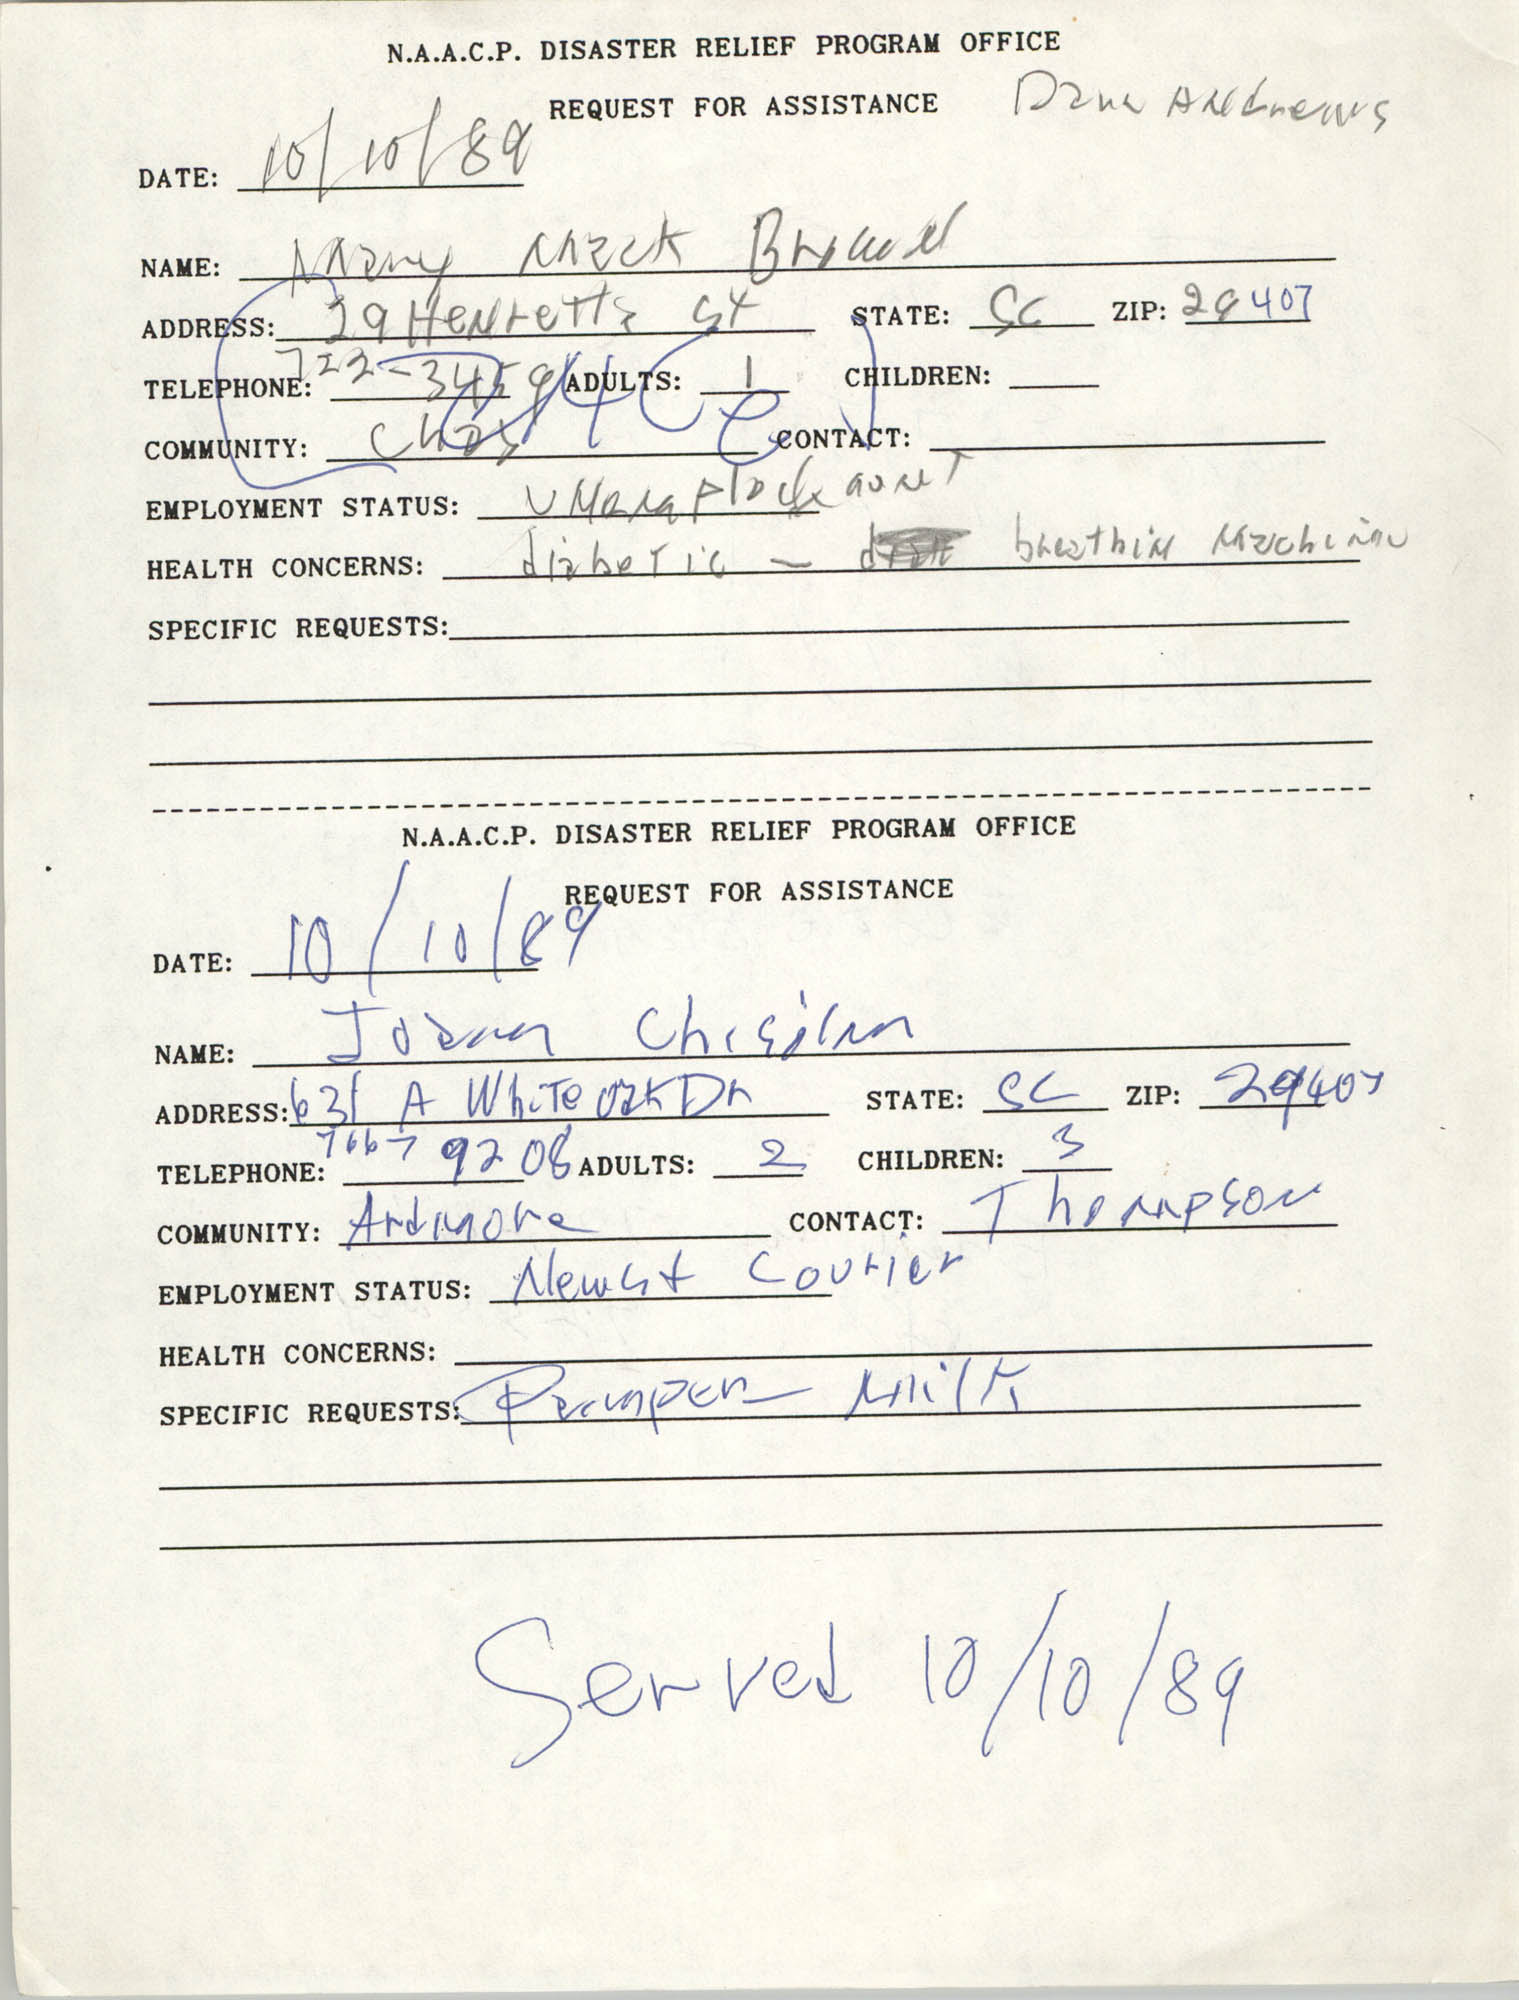 NAACP Disaster Relief Program Office, Hurricane Huge Requests for Assistance, 1989, Page 25